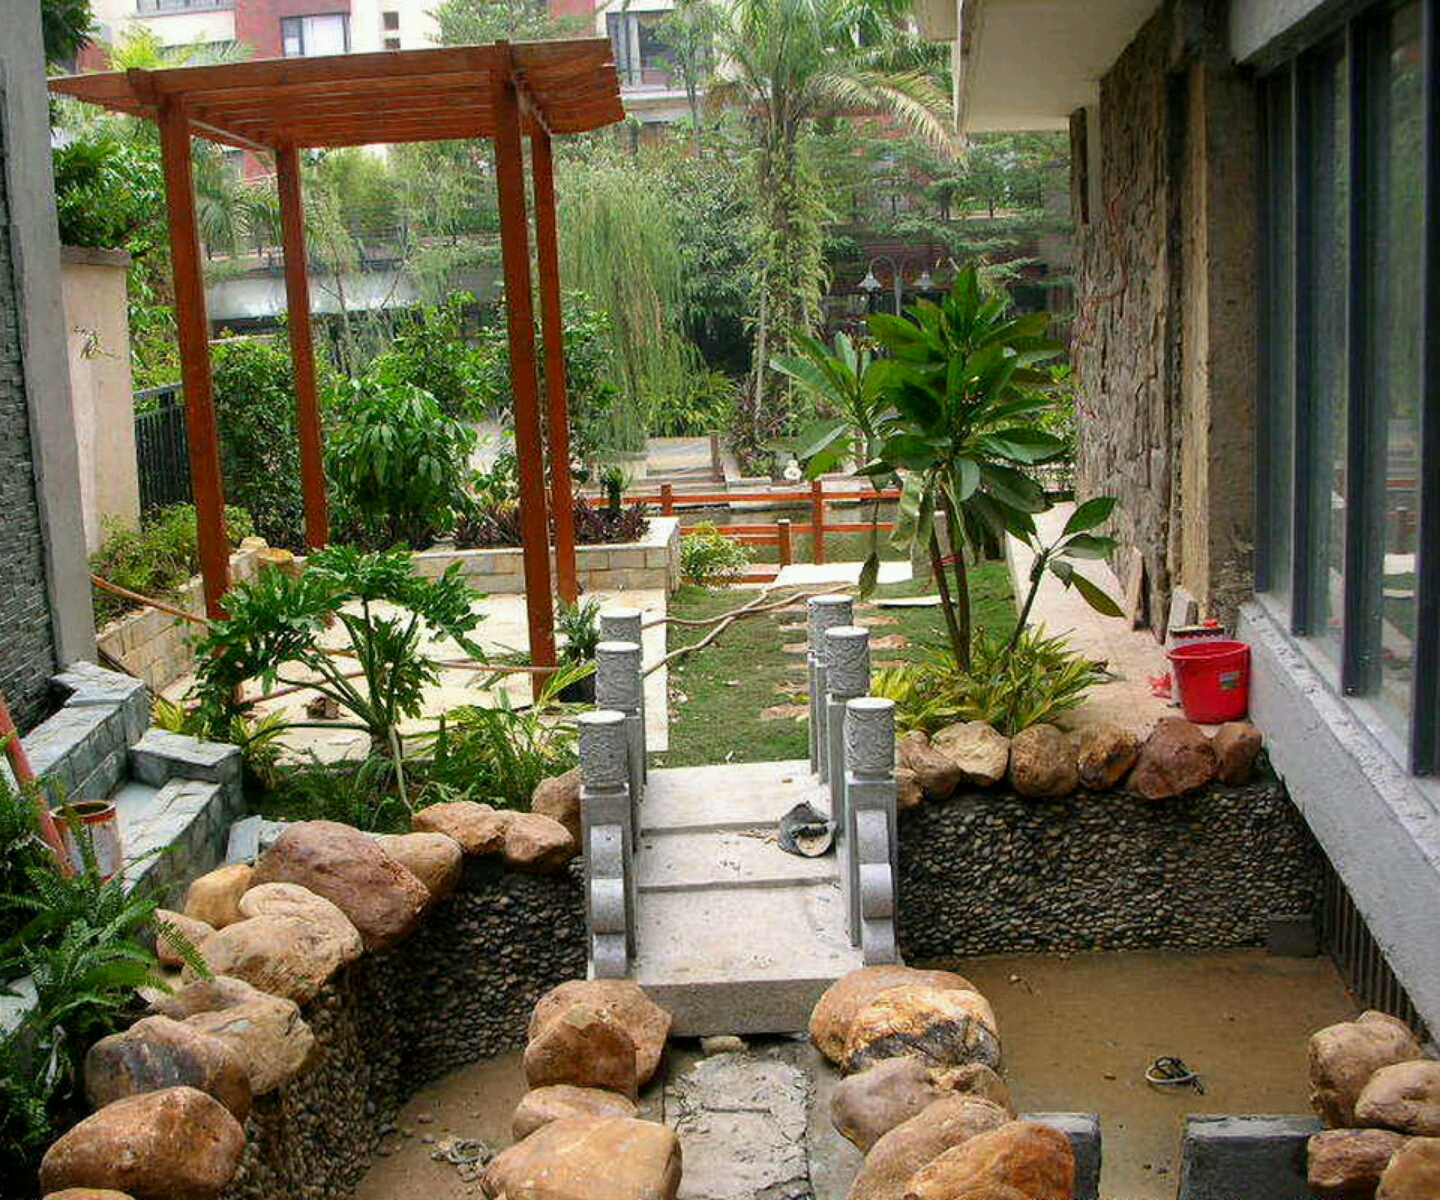 Home Garden Design Ideas India: Beautiful Home Gardens Designs Ideas.